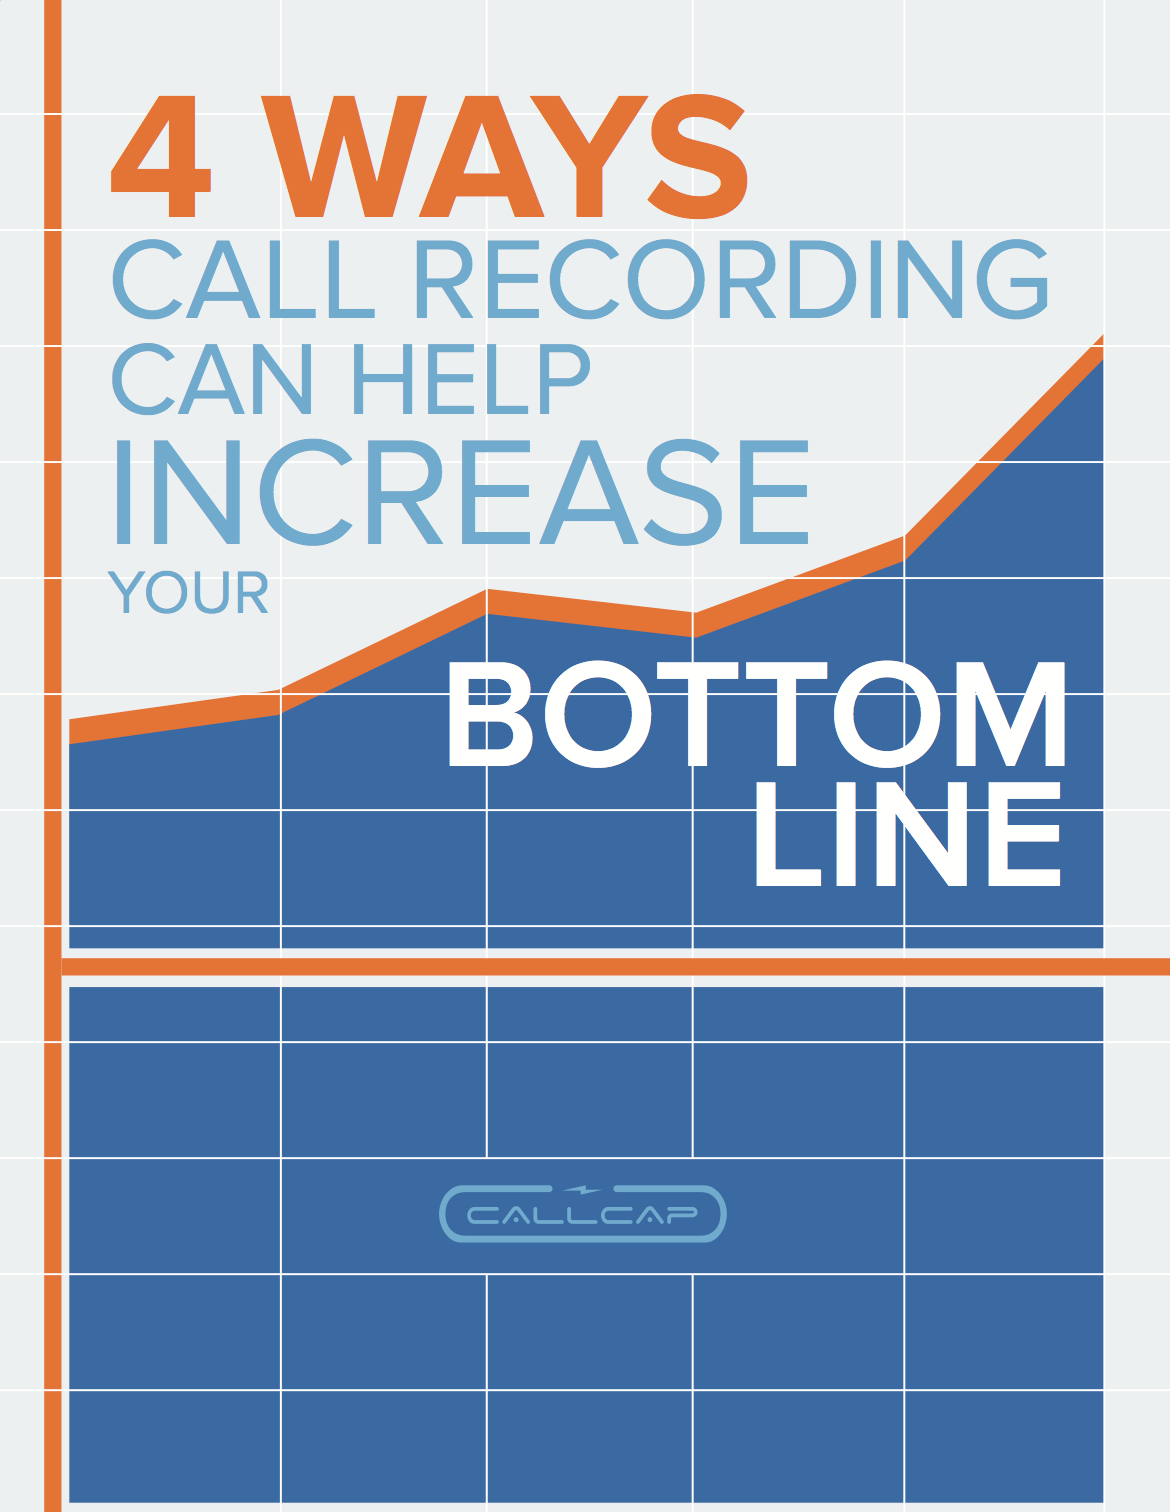 4 Ways Call Recording Can Help Increase Your Bottom Line white paper